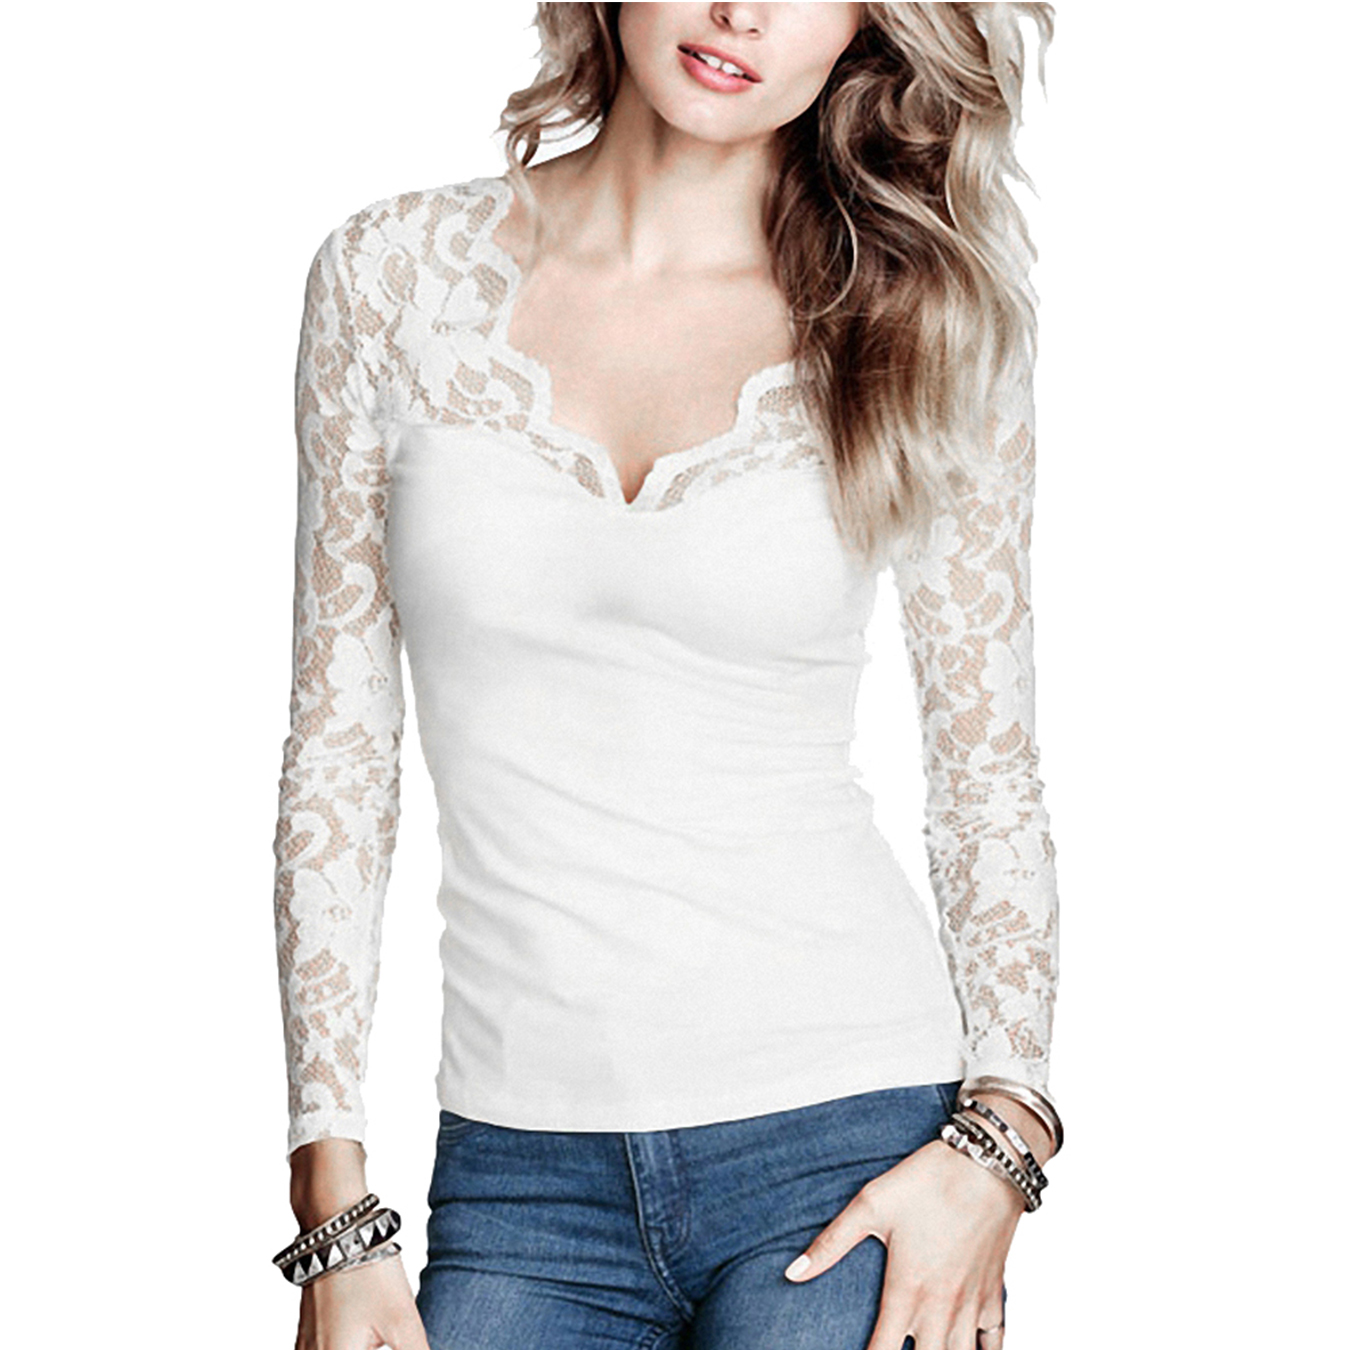 Shop women's tops at New York & Company. Choose from our dress, casual, and work collections, including blouses, camis, tank tops, feminine ruffles, borrowed from the boys shirts and more.